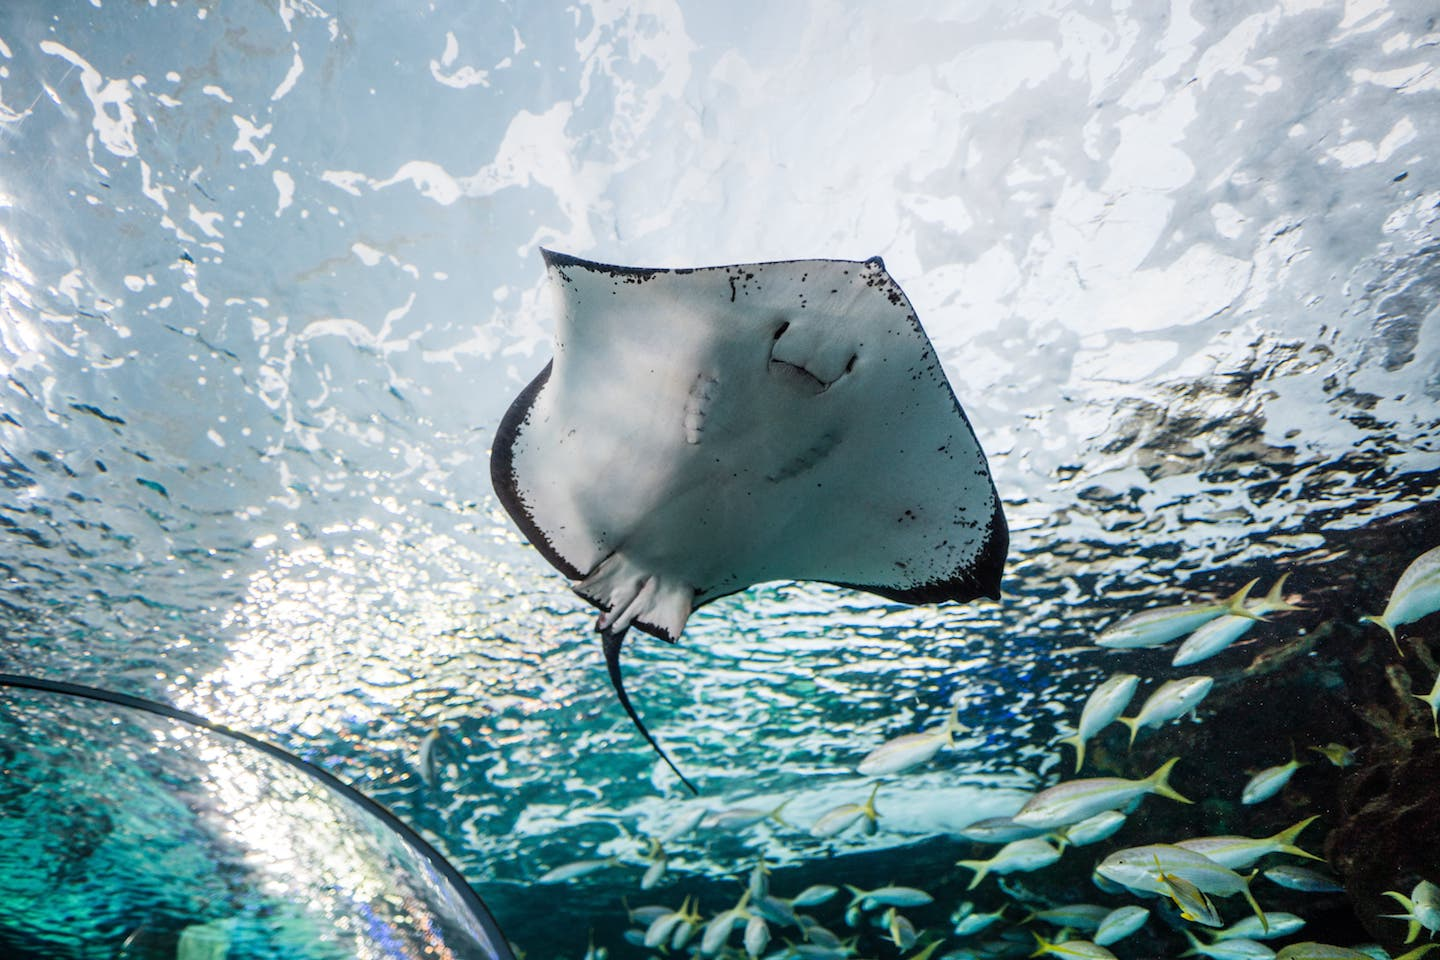 Wild manta ray swimming in ocean